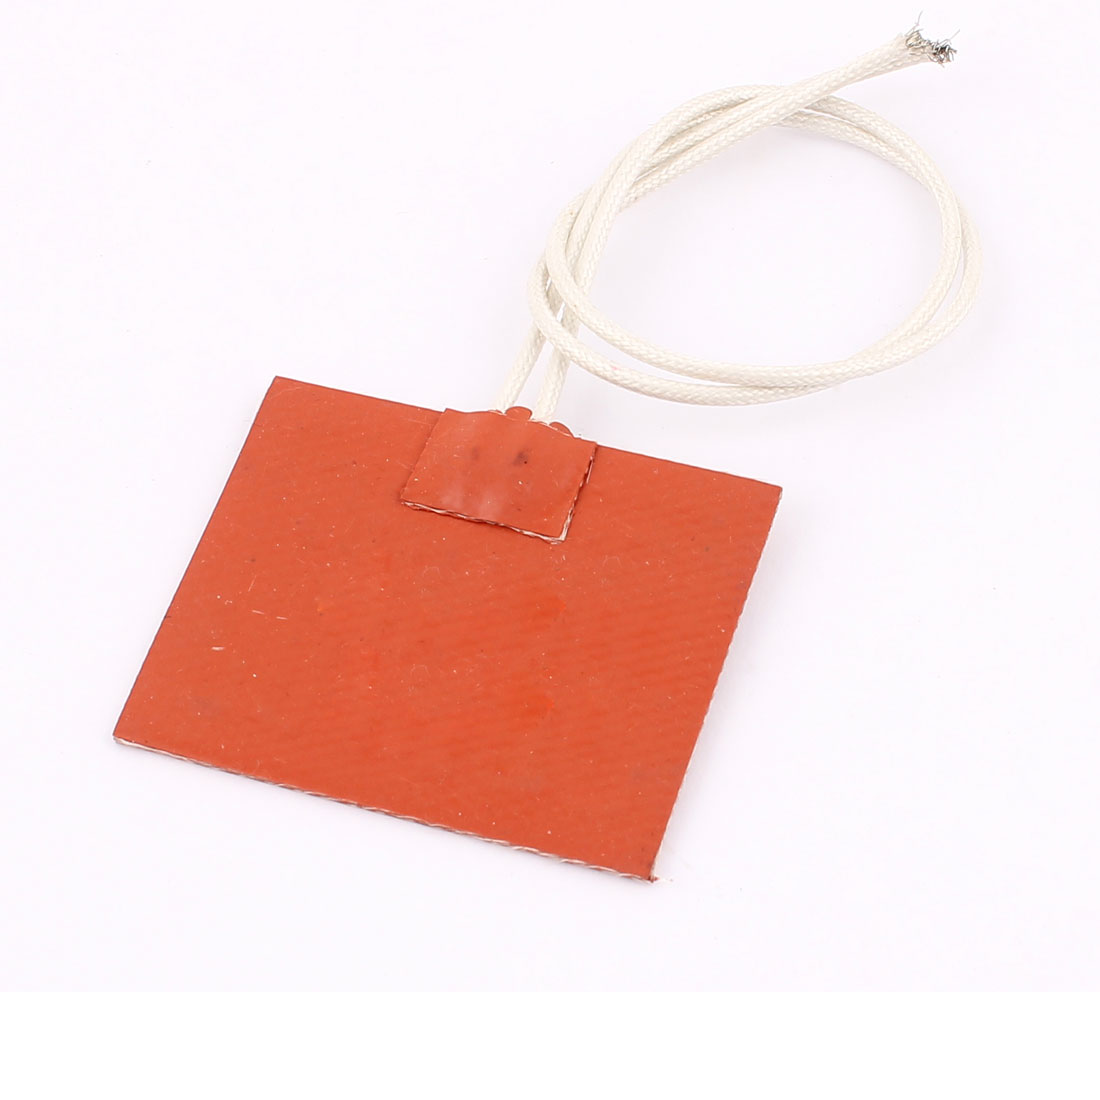 7V 20W Silicone Heating Plate 3D Printer Heater Flexible Rubber Heater 45x55mm